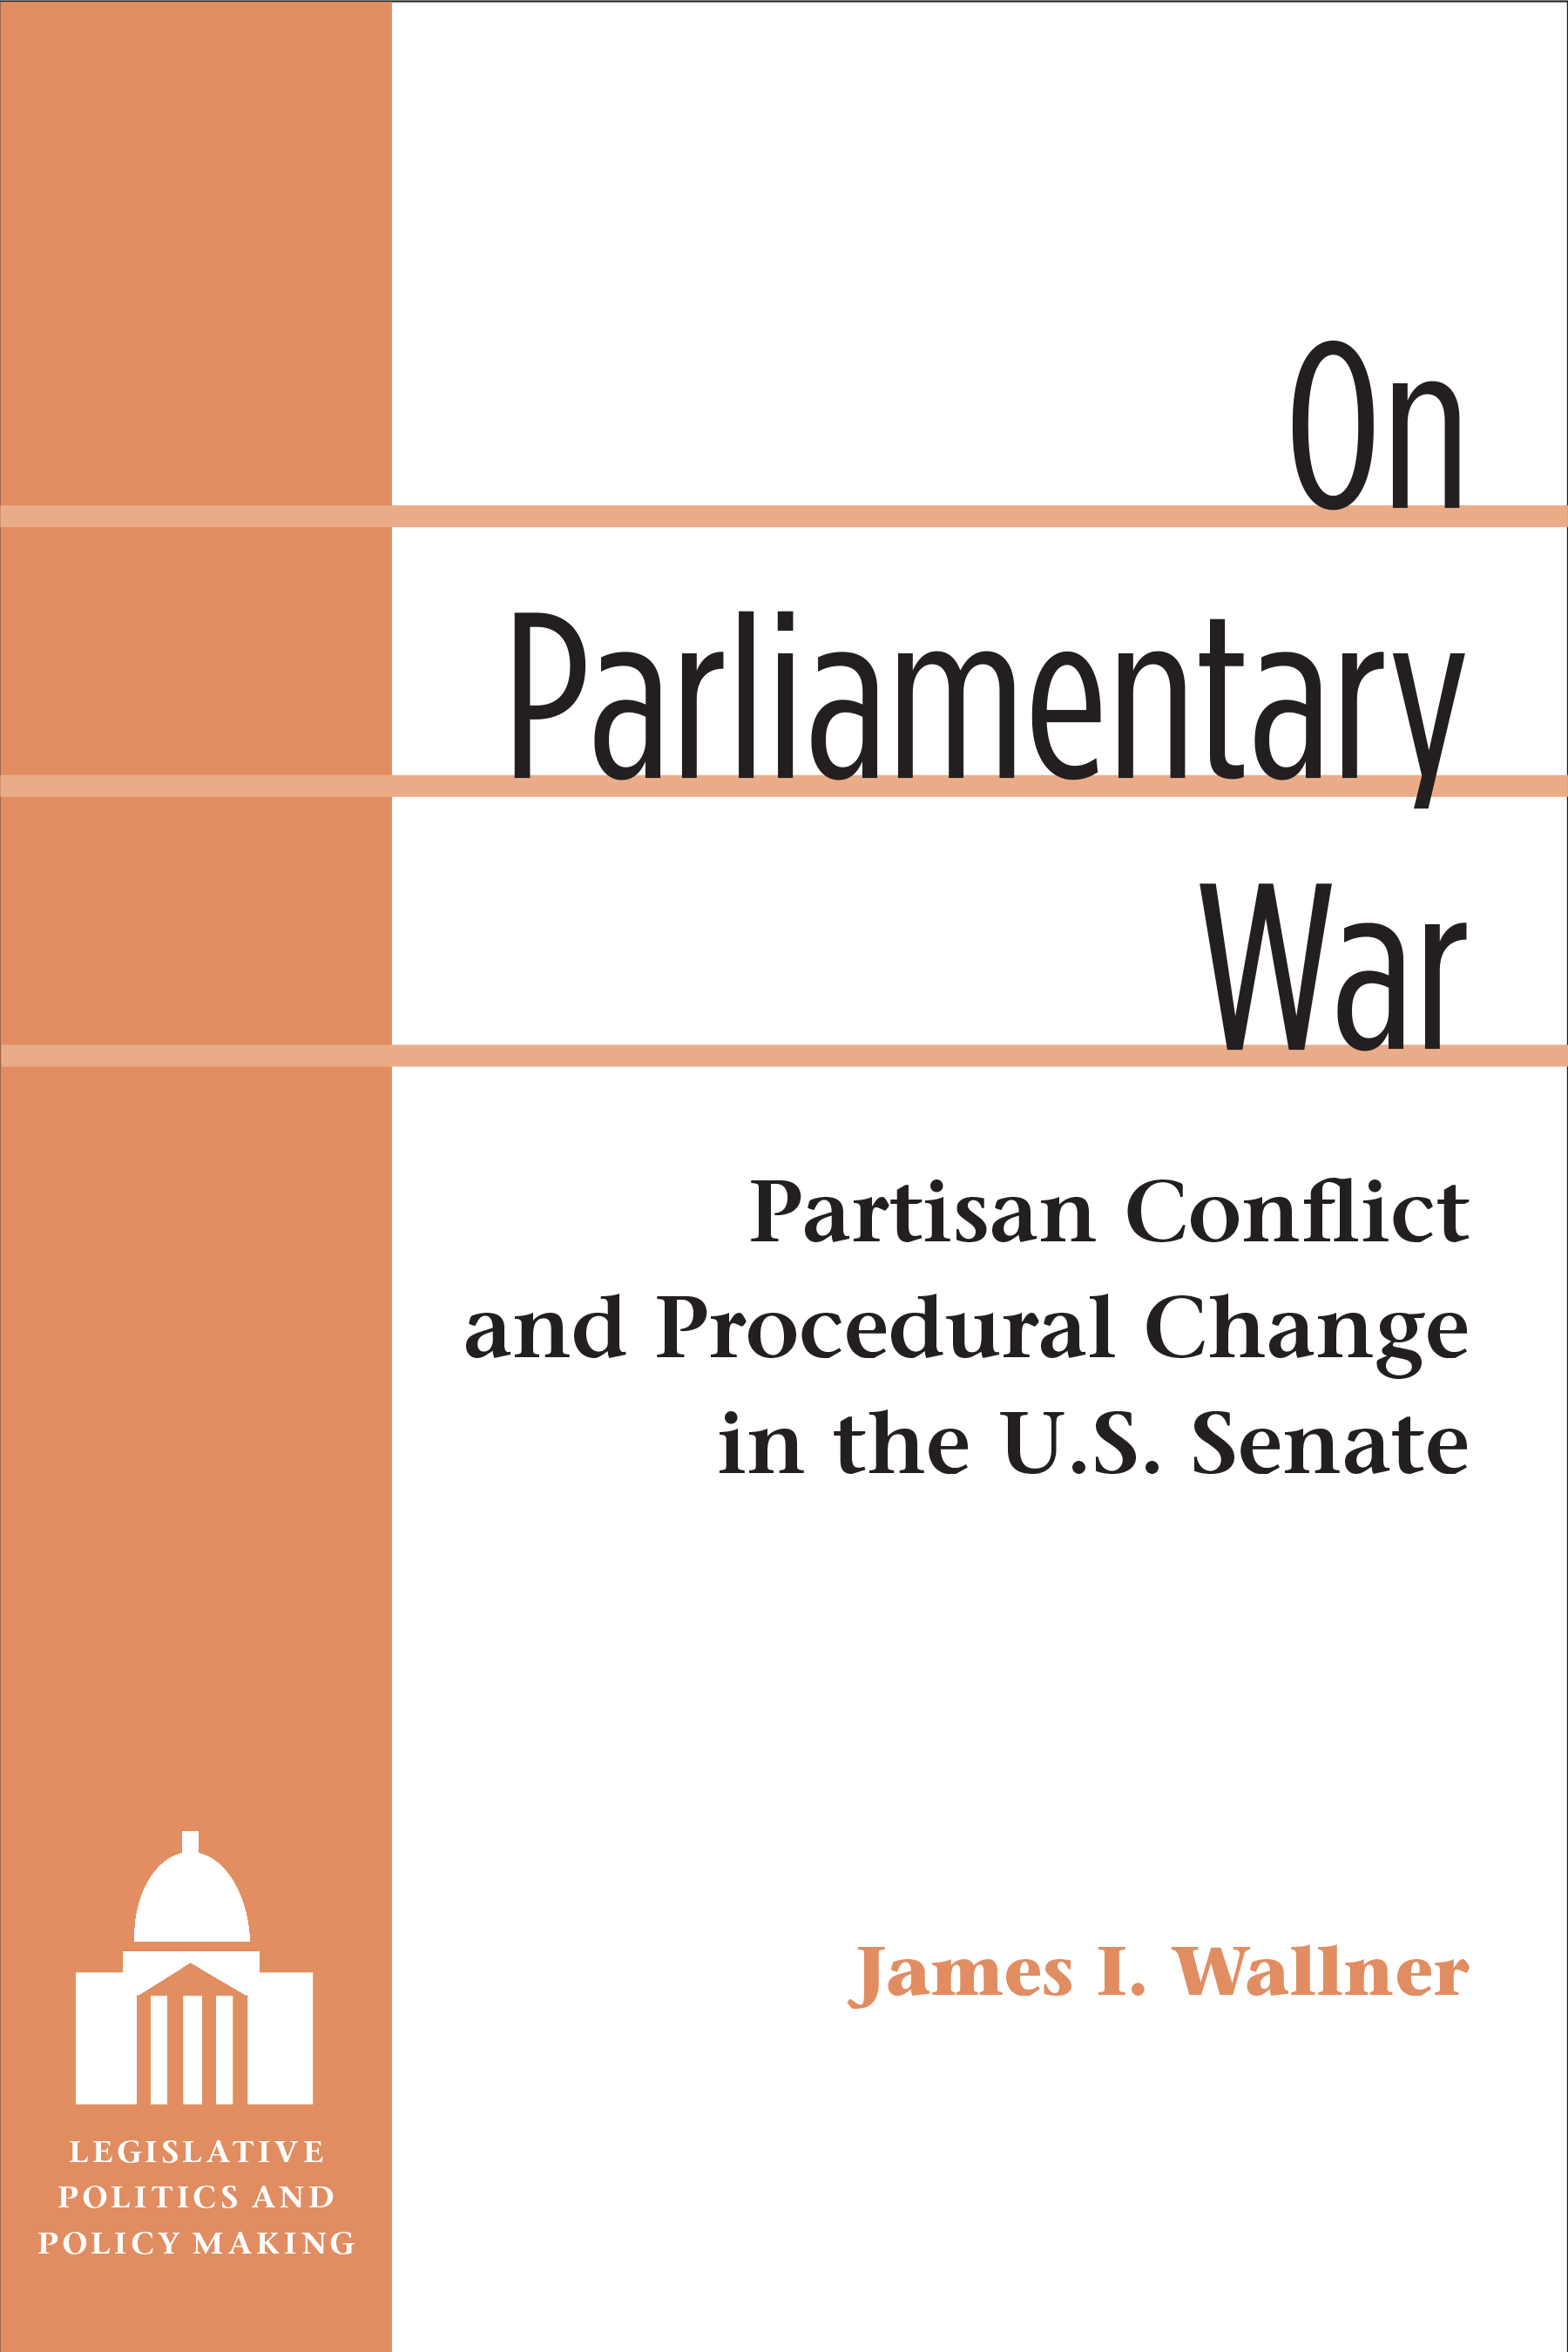 The evolution of american legislatures cover image for on parliamentary war fandeluxe Images